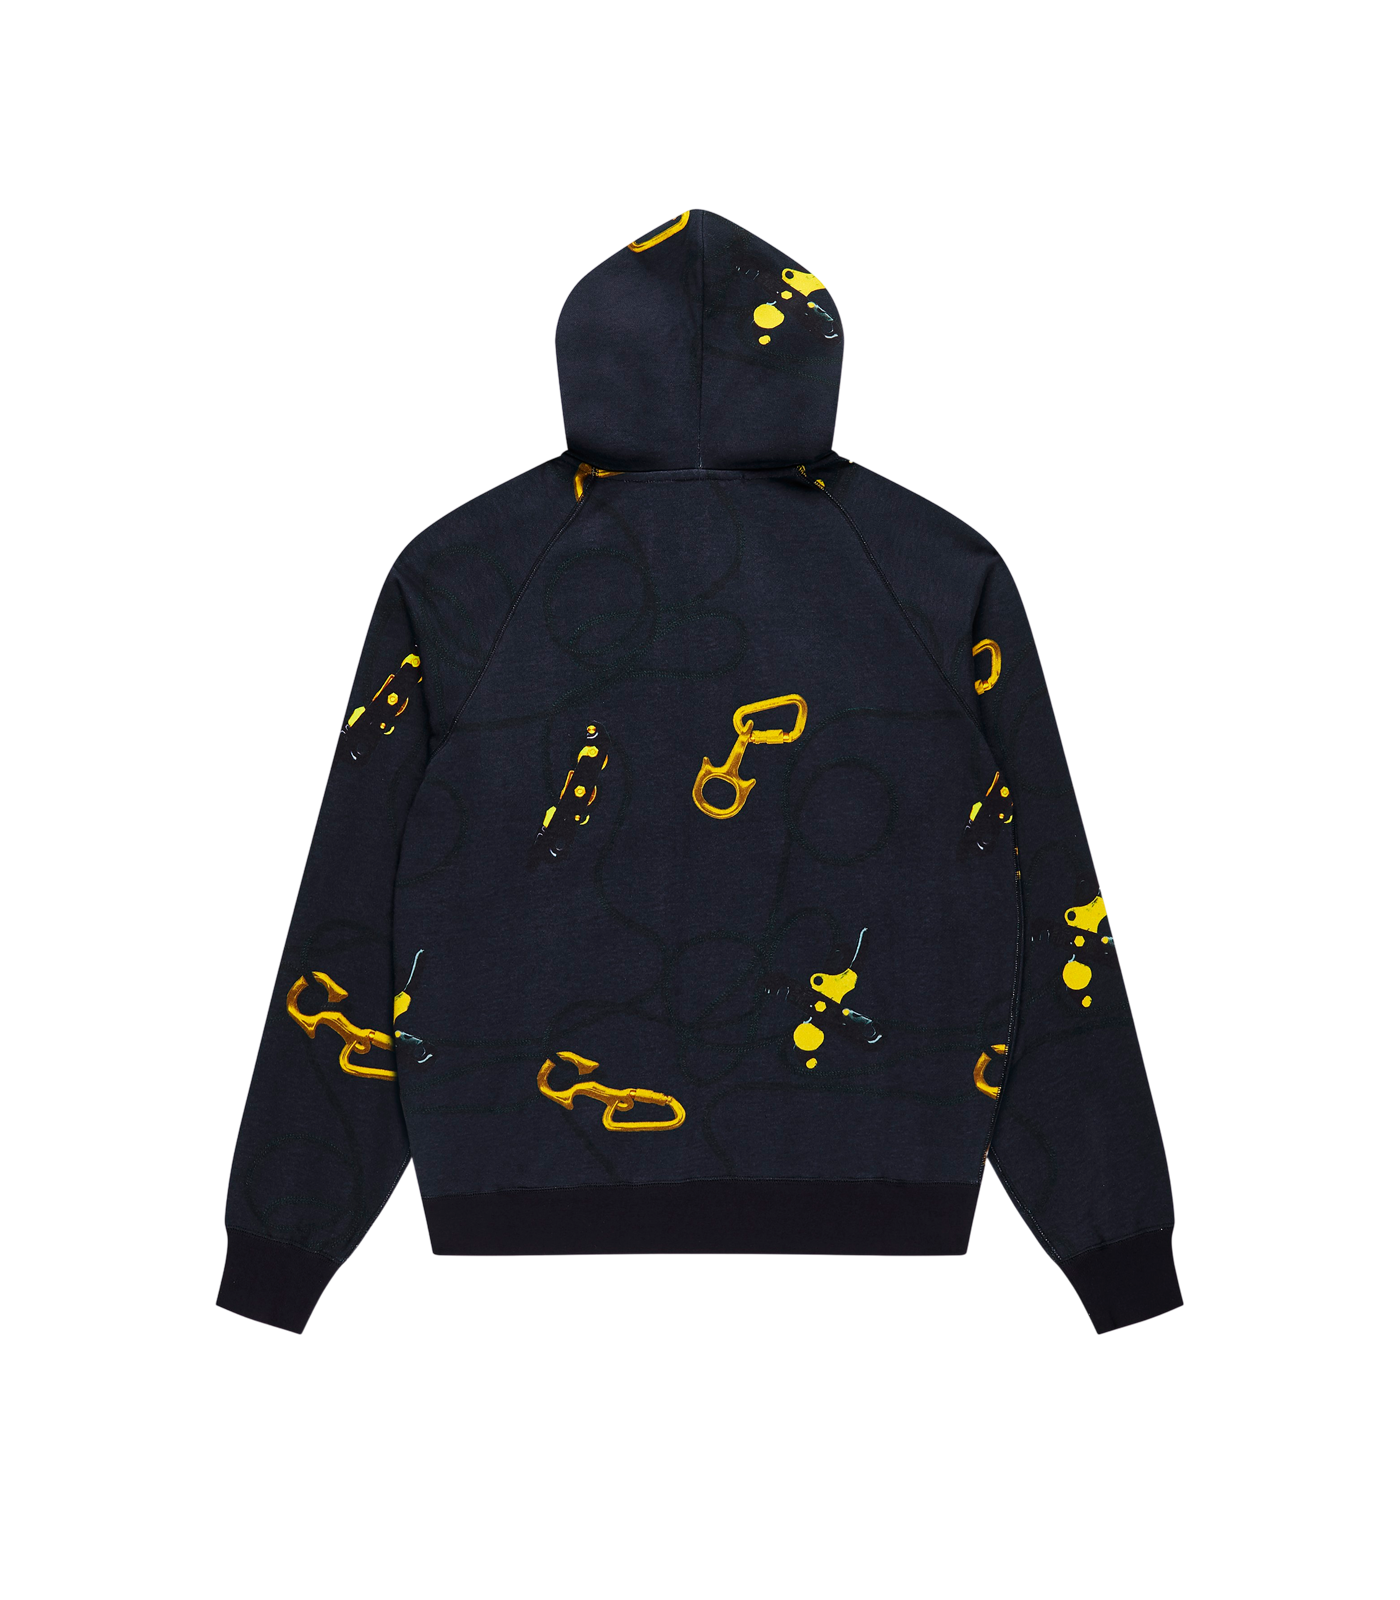 CARABINER ALLOVER PRINT ZIP THROUGH HOOD - NAVY